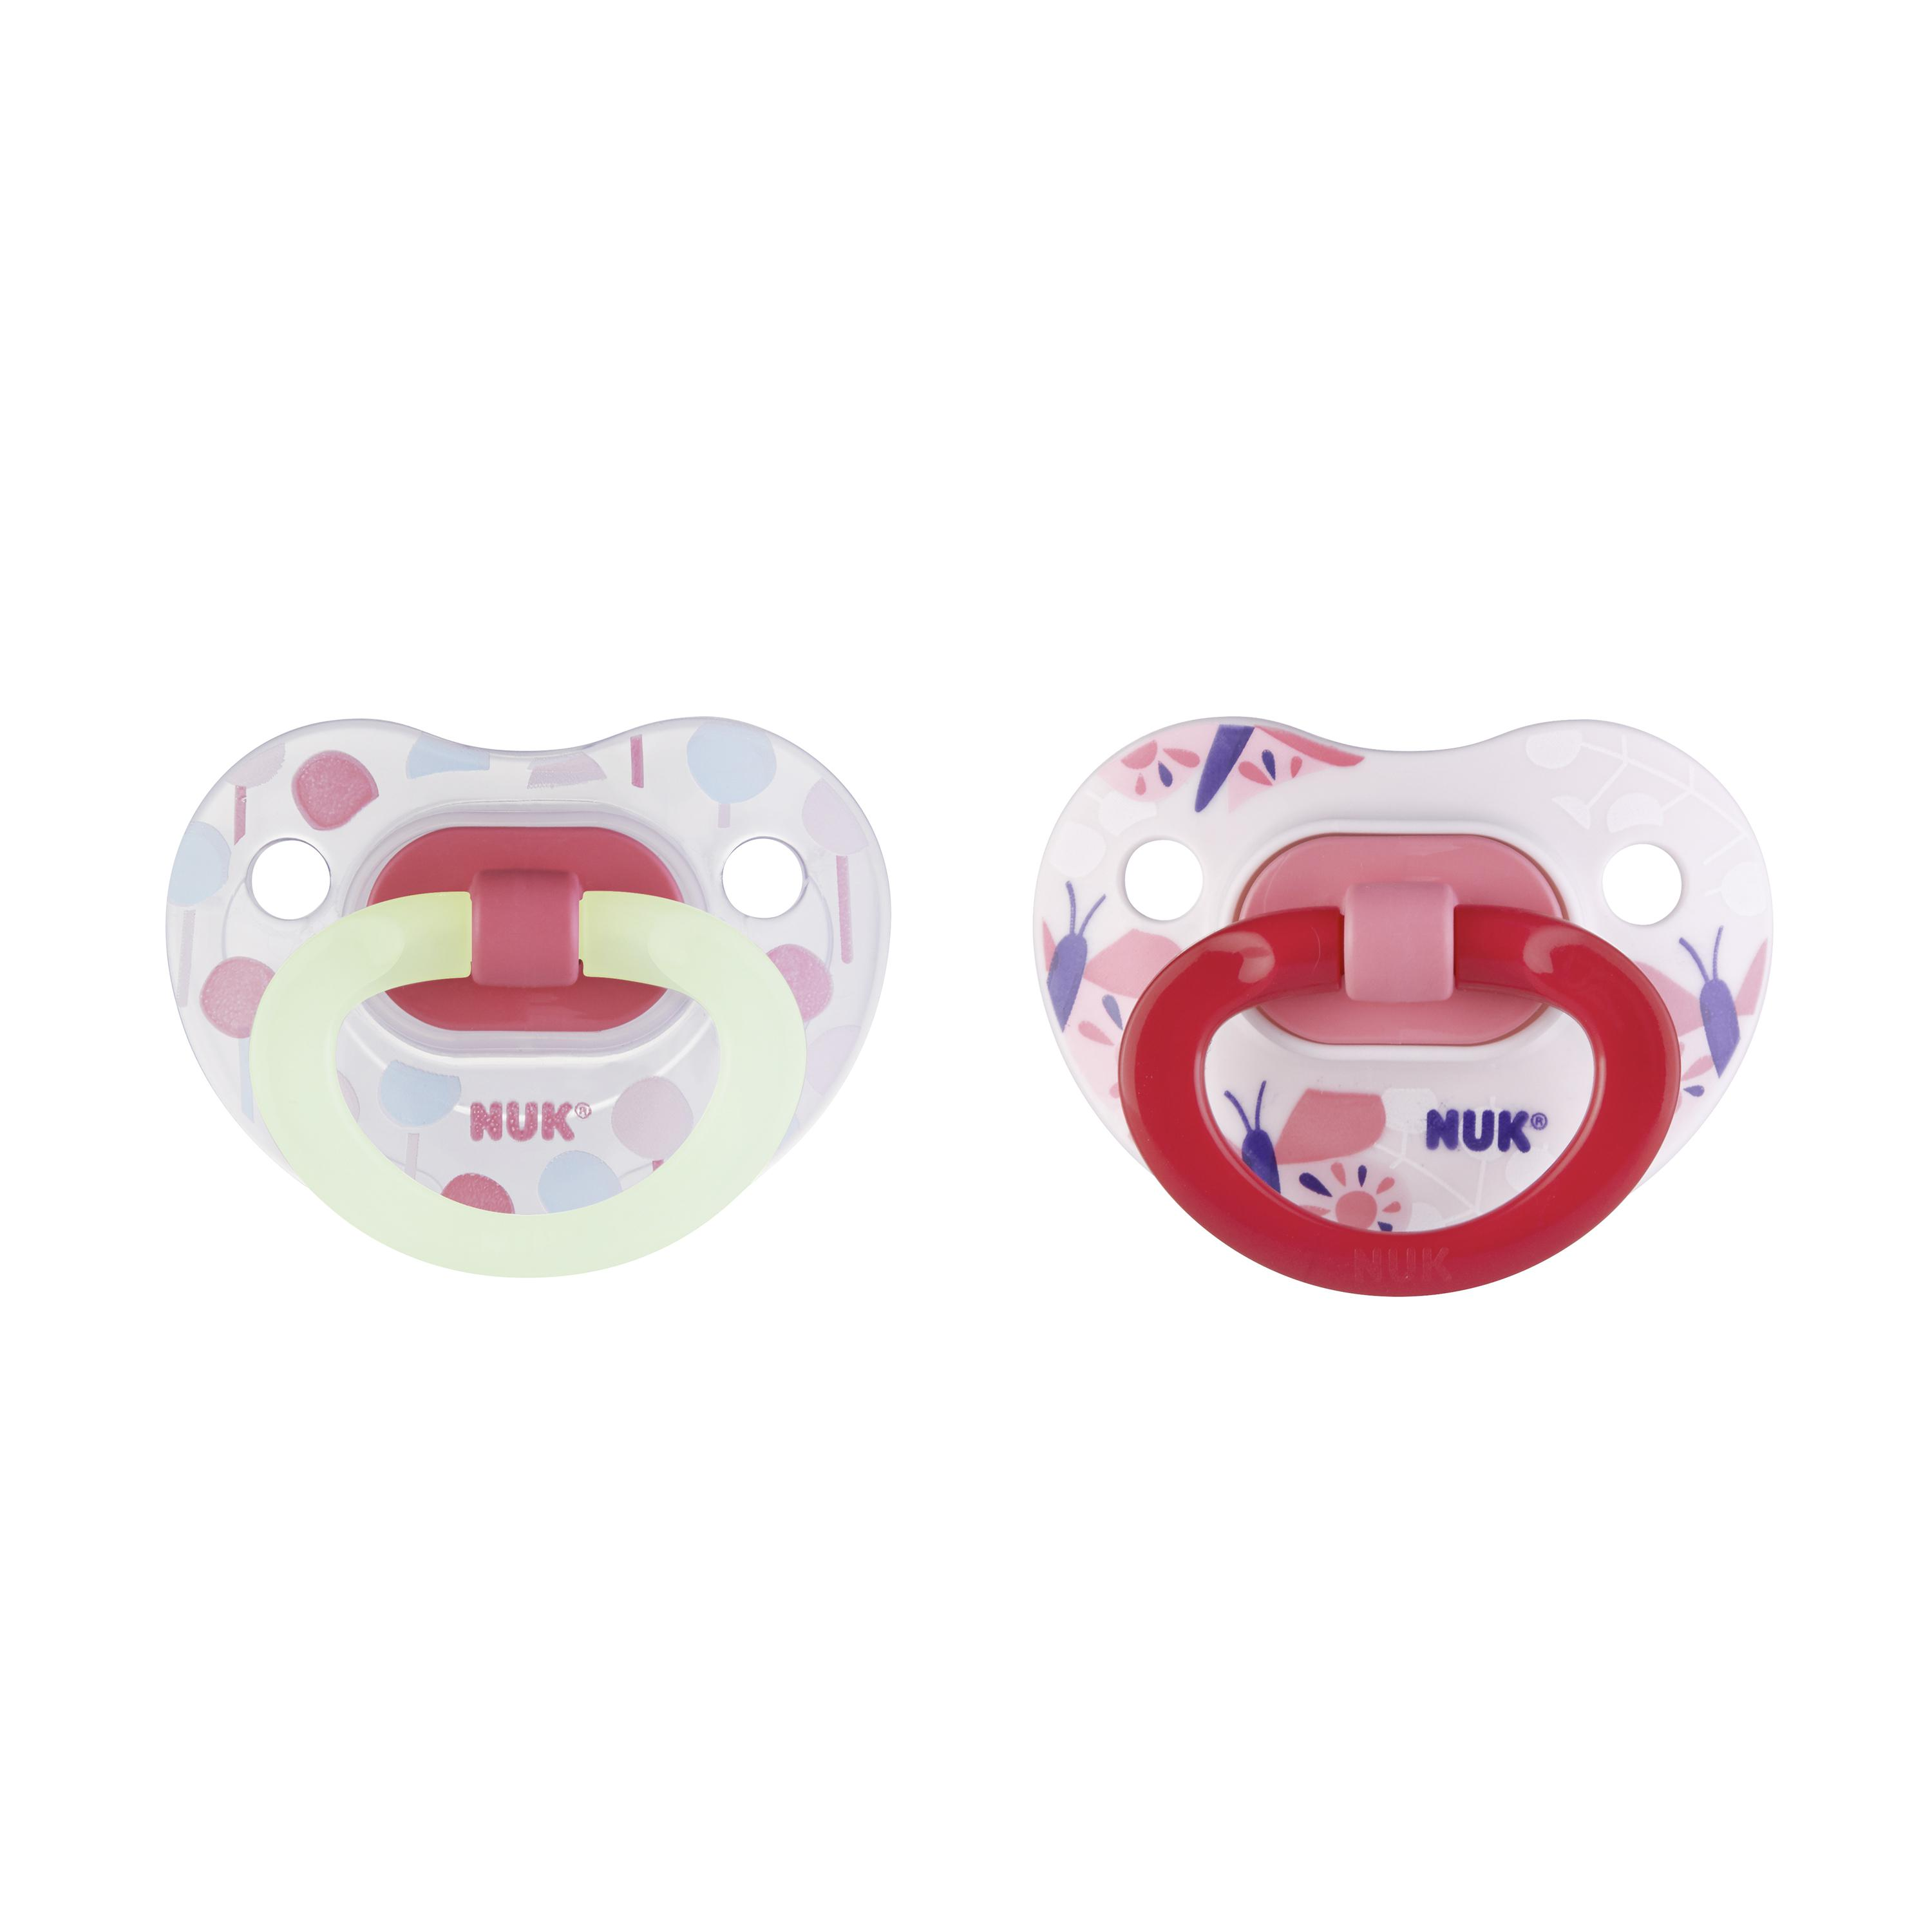 NUK® Glow-in-the-Dark Orthodontic Pacifiers, 6-18 Months, 2-Pack Product Image 6 of 6